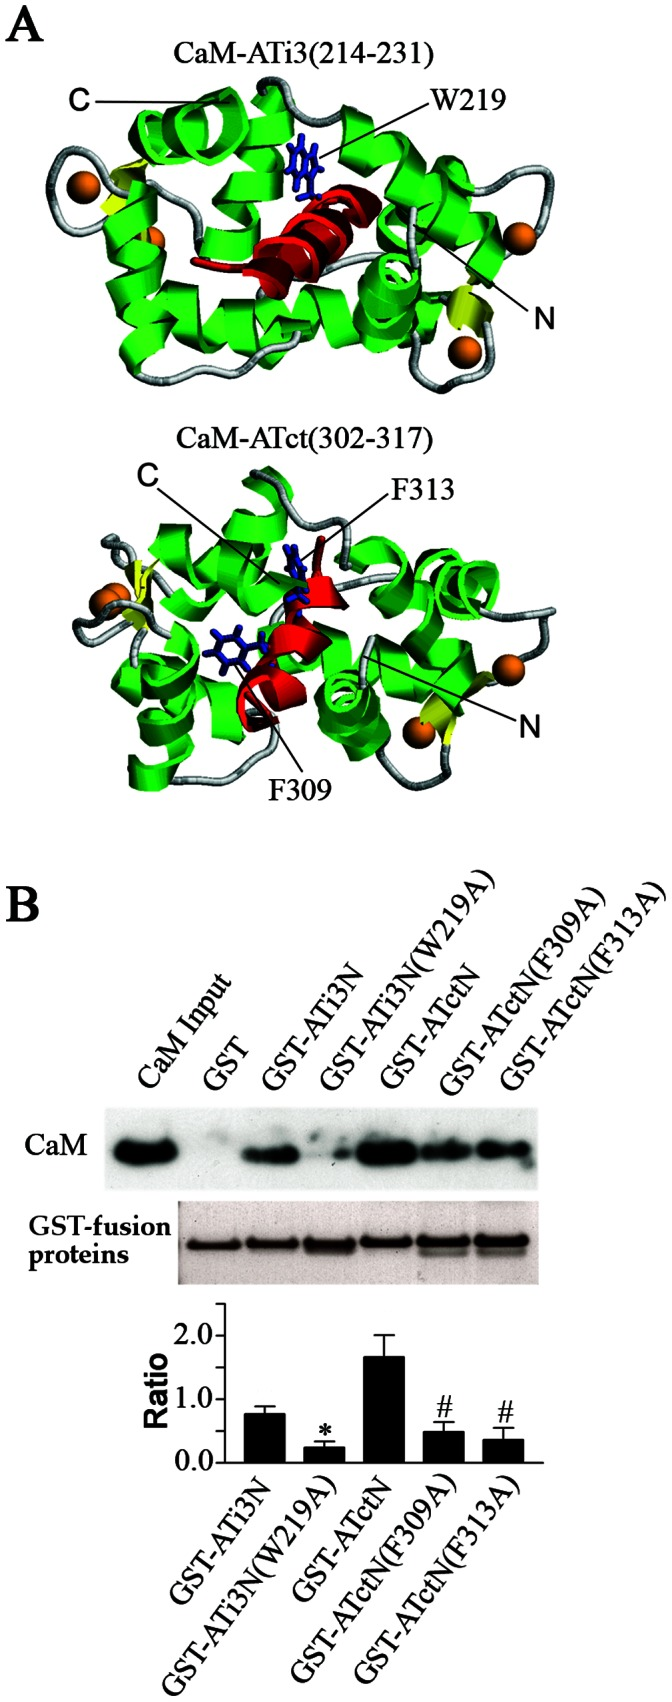 Effect of point mutations in ATi3N or ATctN on their interactions with CaM. A. Modeled structures of CaM-ATi3(214–231) and CaM-ATct(302–317). The complexes of CaM and CaM binding motif in the i3 loop ATi3(214–231) or the carboxyl terminal tail ATct(302–317) of the receptor were modeled as described in Experimental Procedures. The target peptides are colored in red. Residues W219 in ATi3(214–231)−SYTLIWKALKKAYEIQKN, and F309 and F313 in ATct(302–317)−YGFLGKKFKKYFLQLL are displayed with sticks and are colored in blue. Calcium atoms are shown as orange spheres. The N- and C- termini of CaM are also labeled. Helices and sheets in CaM are colored in green and yellow, respectively. B. Effect of point mutations at ATi3N or ATctN on their interaction with CaM. 50 pmol of wild type GST-fusion proteins including GST-ATi3N(213–234) and GST-ATctN (297–324), and 50 pmol of mutated GST-fusion proteins including GST-ATi3N(W219A), GST-ATctN(F309A) and GST-ATctN(F313A), were incubated with purified bovine brain CaM in a buffer containing 100 mM Tris-HCl (pH 7.5) with 0.1 mM CaCl 2 . The protein complexes were pulled down by gluthathione-sepharose 4B beads, and subjected to immunoblot with a specific anti-CaM antibody. GST-fusion proteins were visualized in the gels by Coomassie blue staining (the lower gel panel). The summary graph represents relative densities of the ratio of the CaM in the immunoblots and the loaded GST-fusion proteins as determined by Coomassie blue staining. The bars represent mean ± S.E. from 5 independent experiments. * or # stand for P